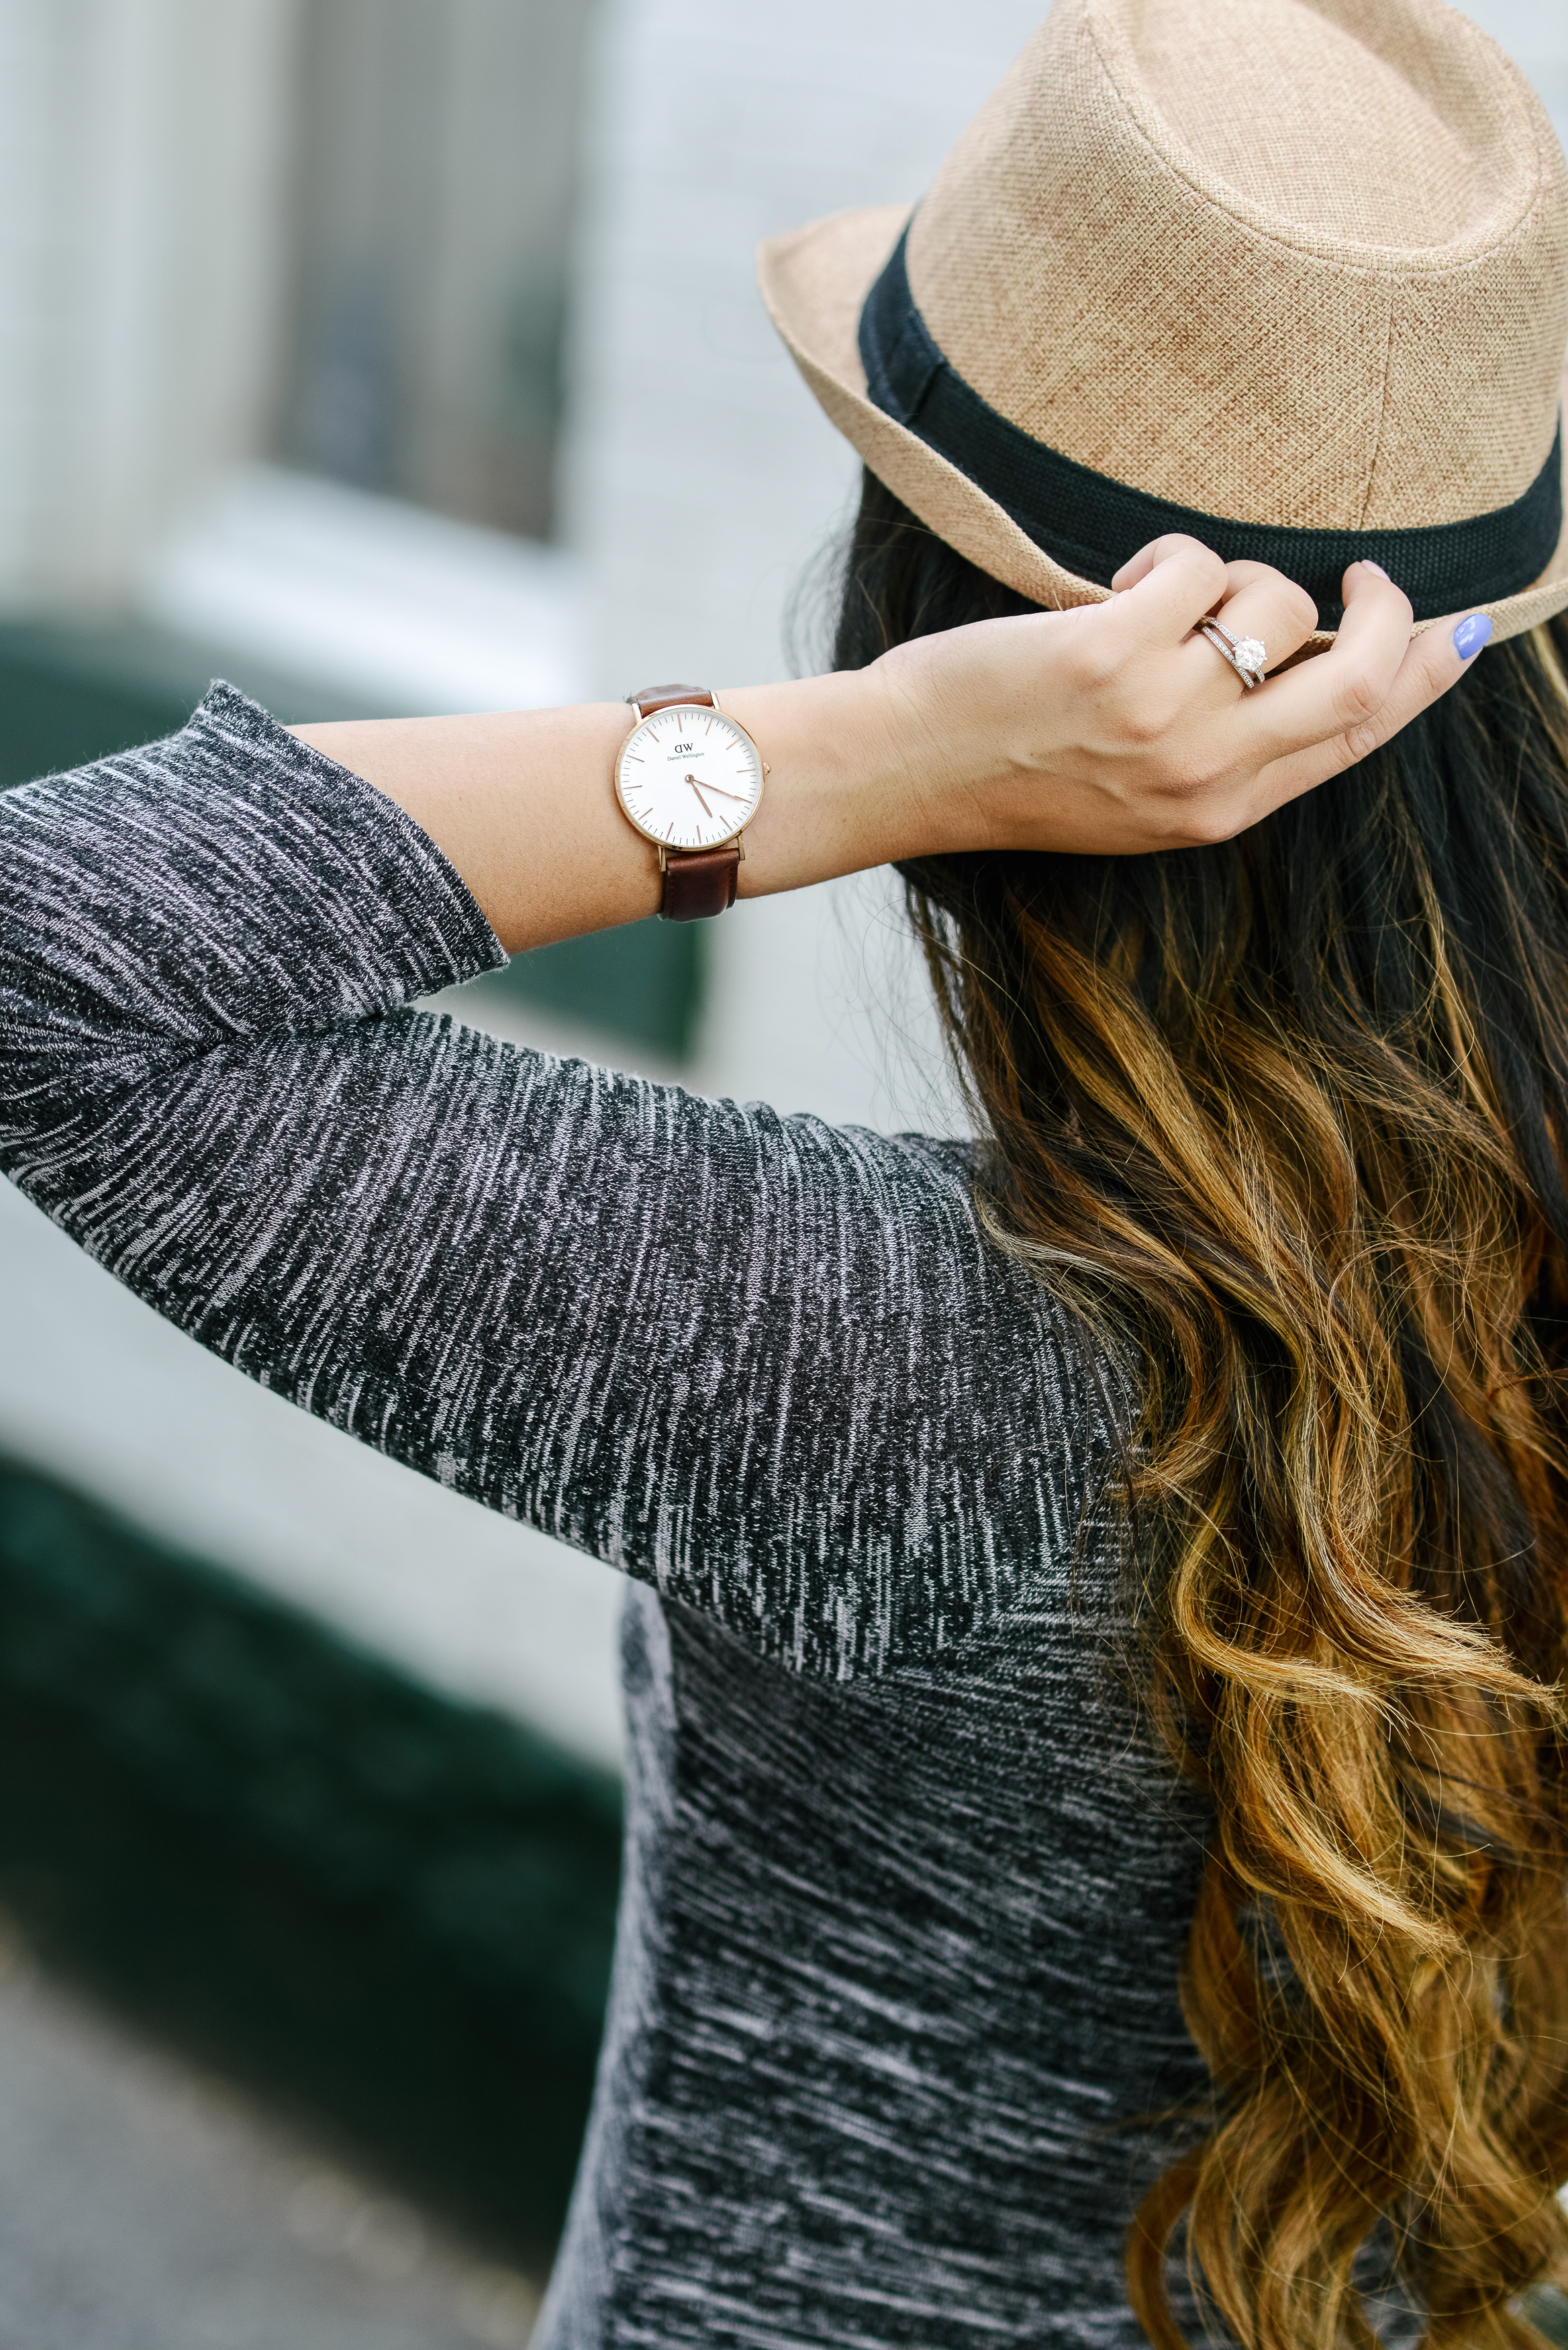 How to style neutral colors